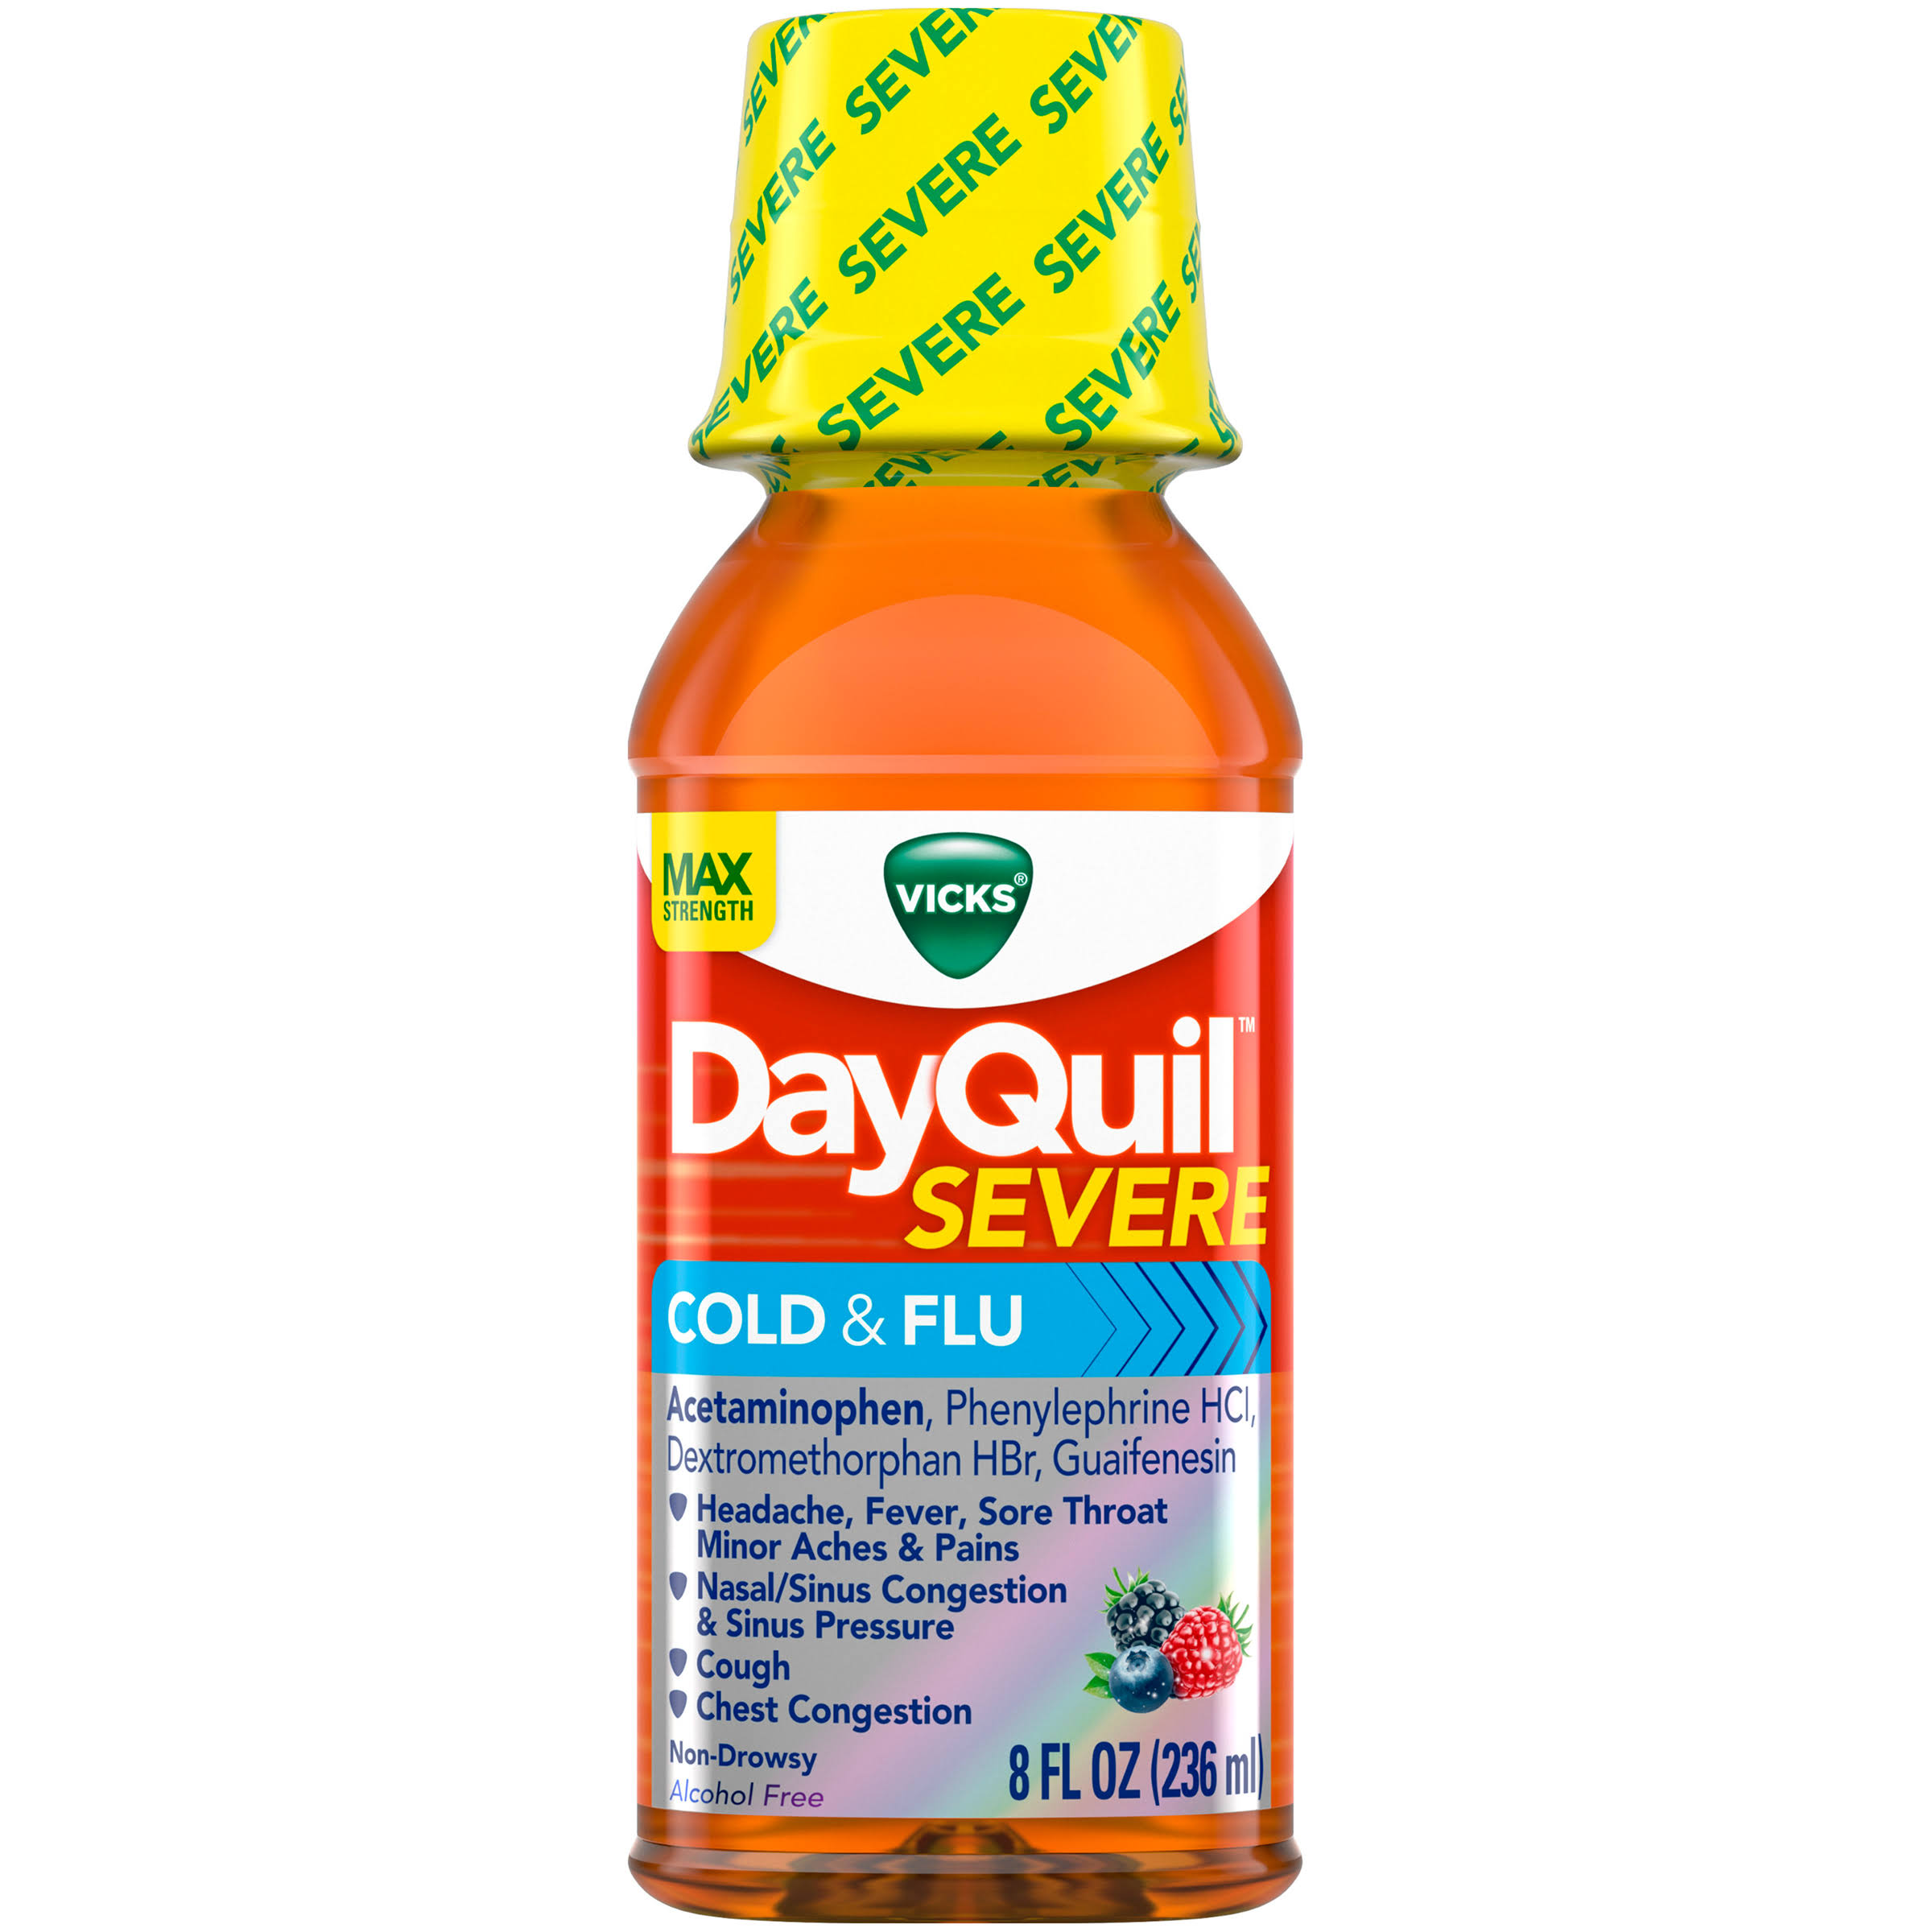 Vicks Dayquil Severe Cold and Flu Relief Liquid - 240ml